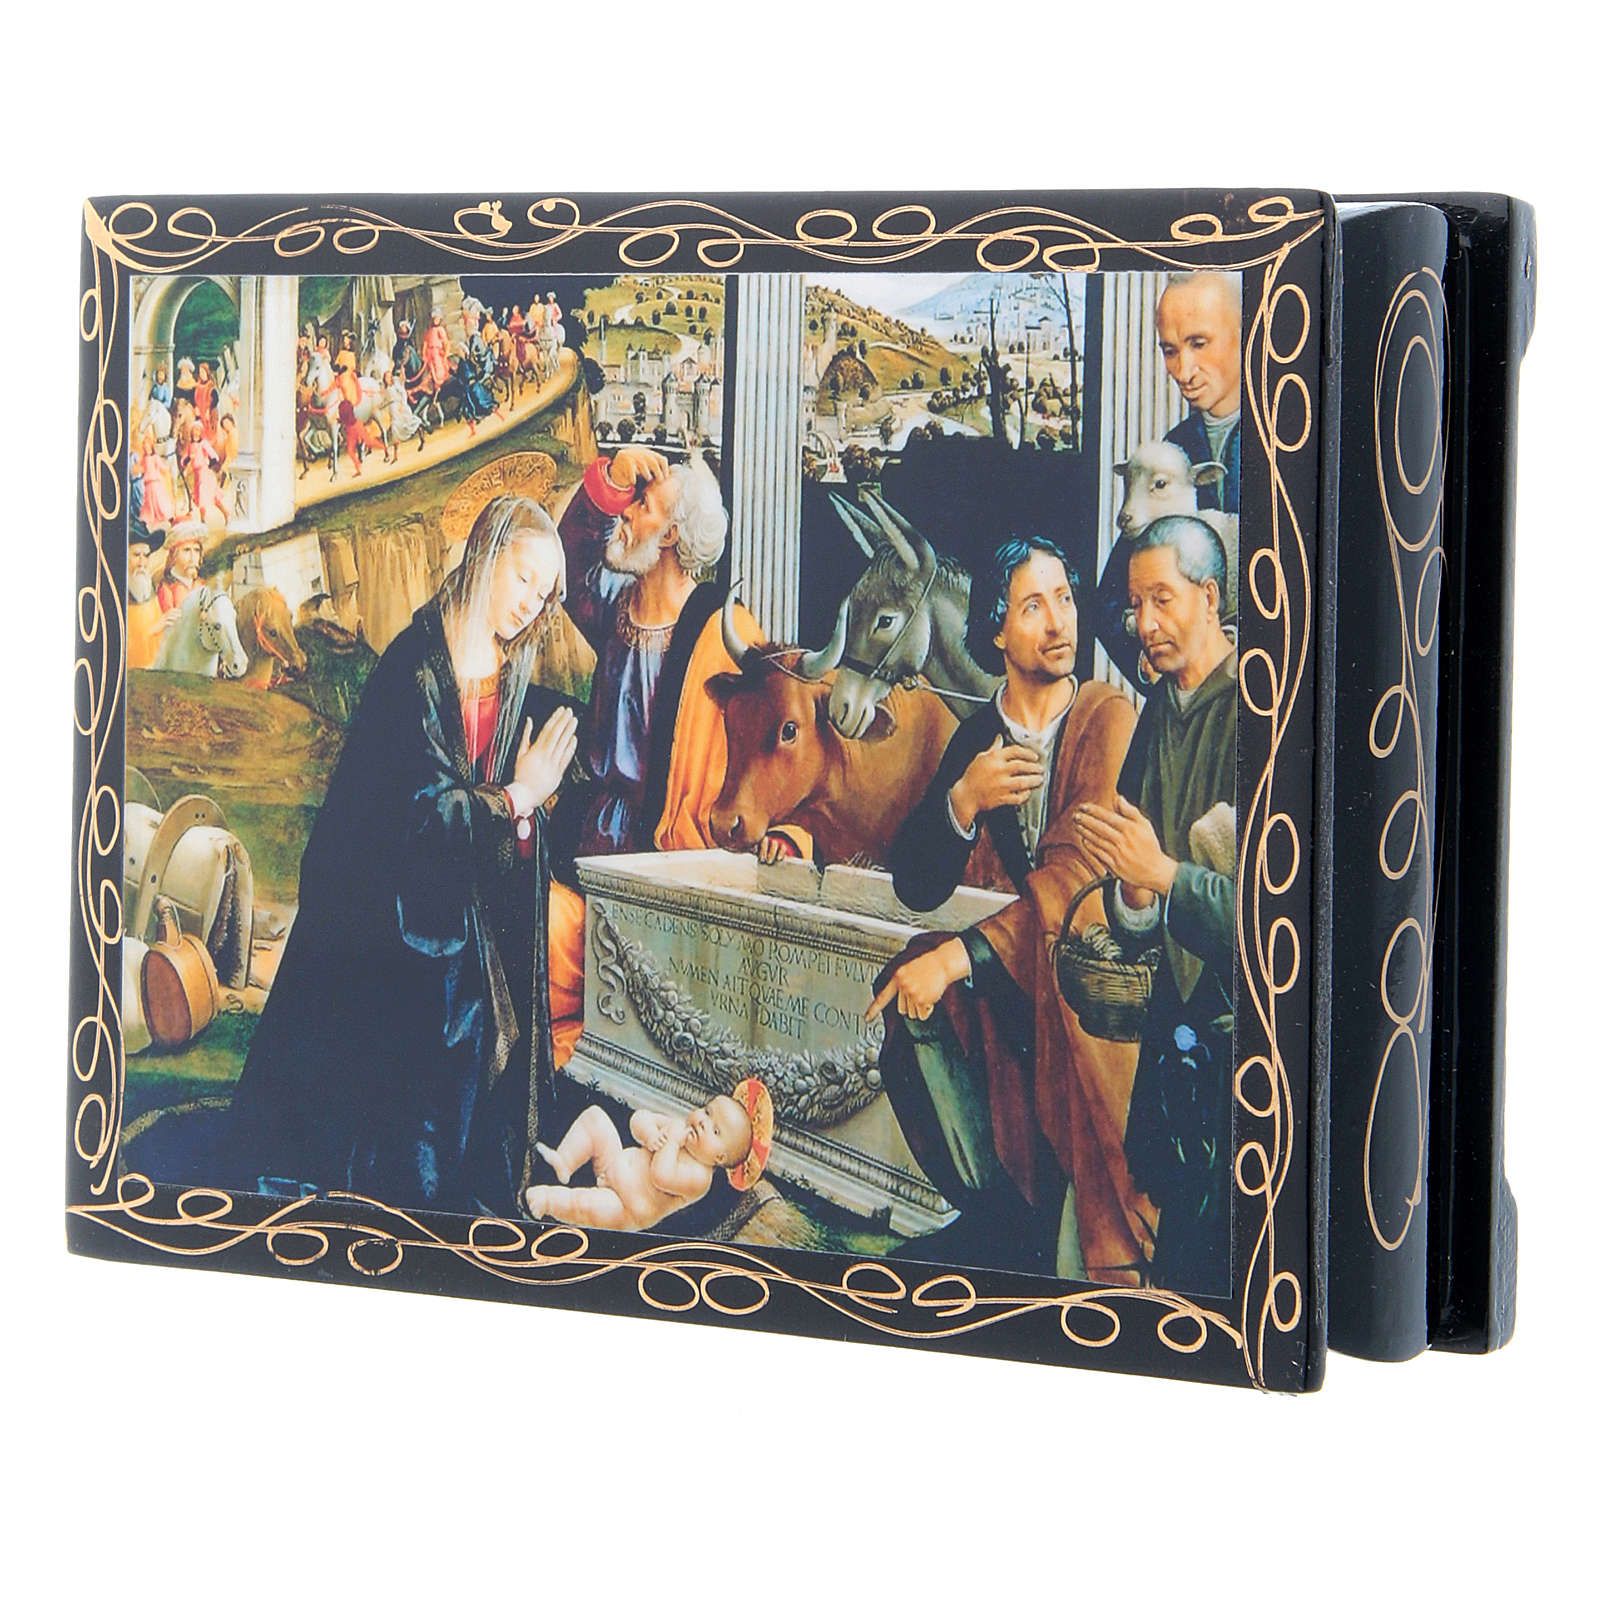 Russian lacquer box, Adoration of the Shepherds 14x10 cm 4